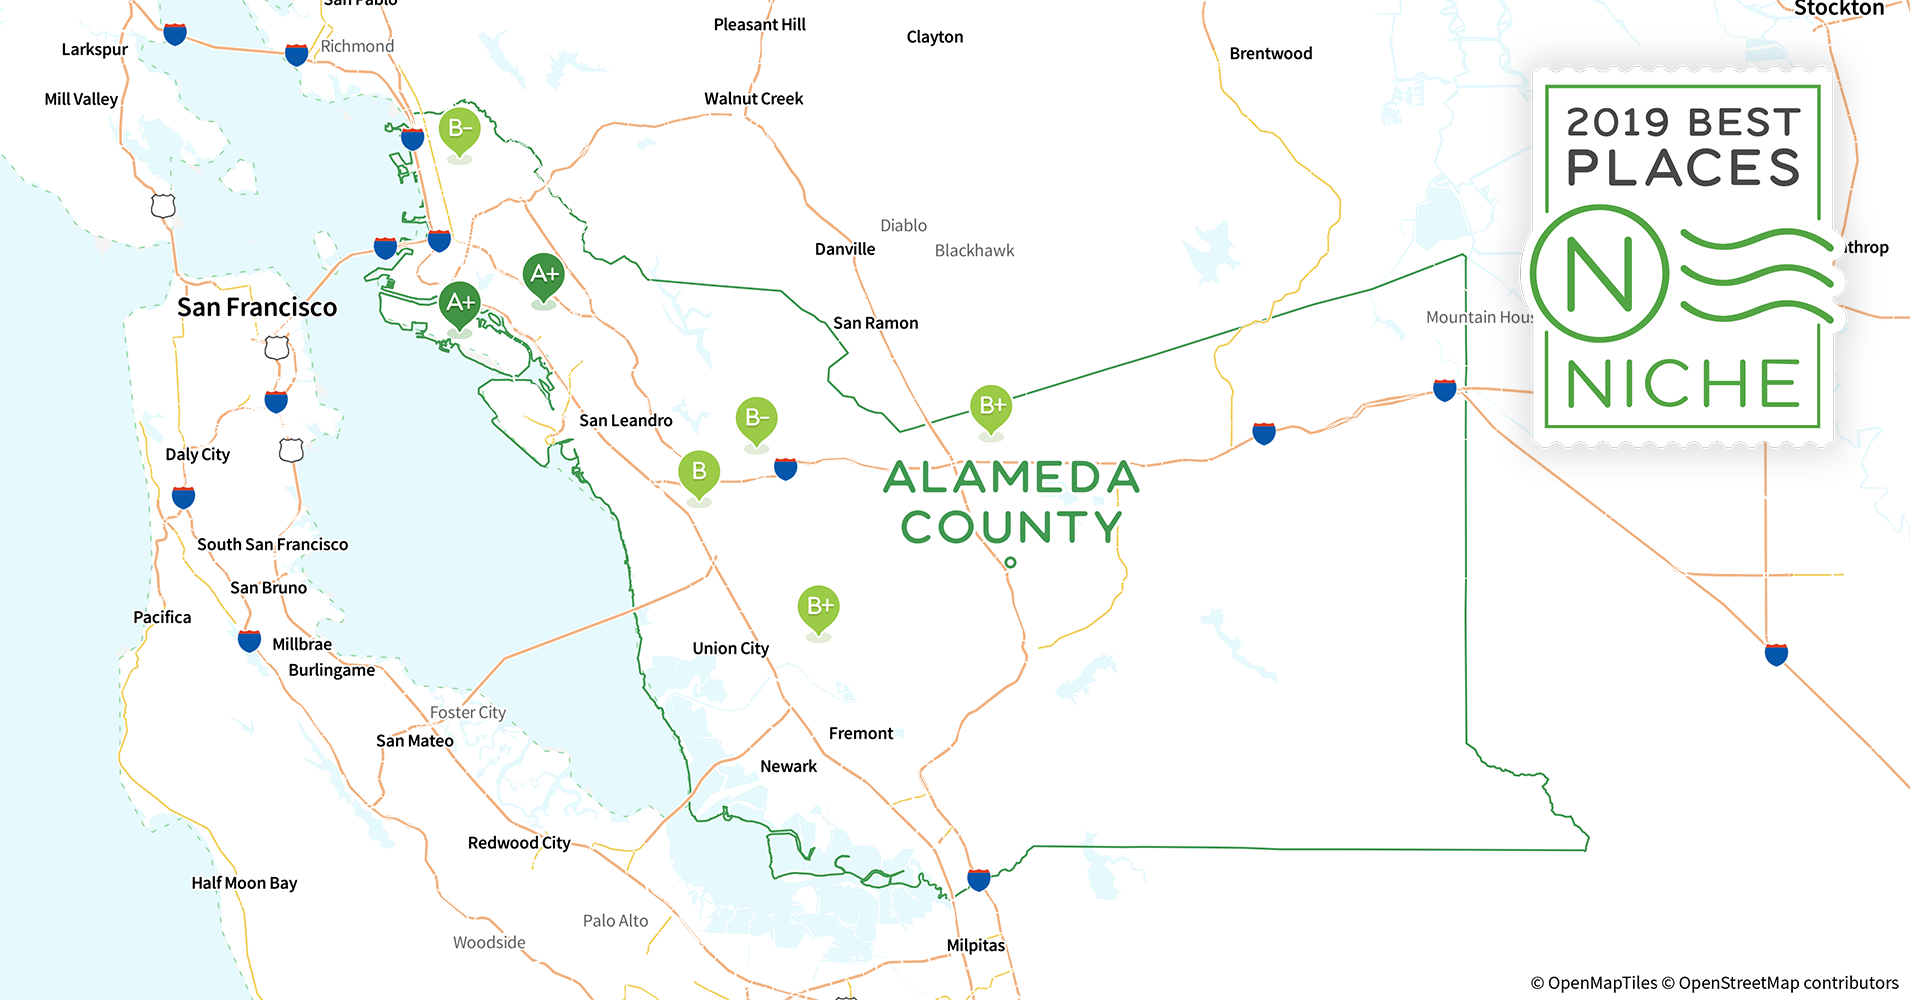 2019 Best Places to Live in Alameda County, CA - Niche Map Of Alameda California on cities in alameda county california, map of alameda island ca, map of unincorporated alameda county, map of phoenix arizona, map of port orchard washington, map of mcminnville oregon, bad neighborhoods in oakland california, map of sheffield uk, map of auburn washington, map of ormond beach florida, map of venice florida, map of westerville ohio, alameda island california, map of beaverton oregon, map of gresham oregon, map of orlando florida, map of bend oregon, map of king of prussia pennsylvania, map of moab utah, map of tucson arizona,